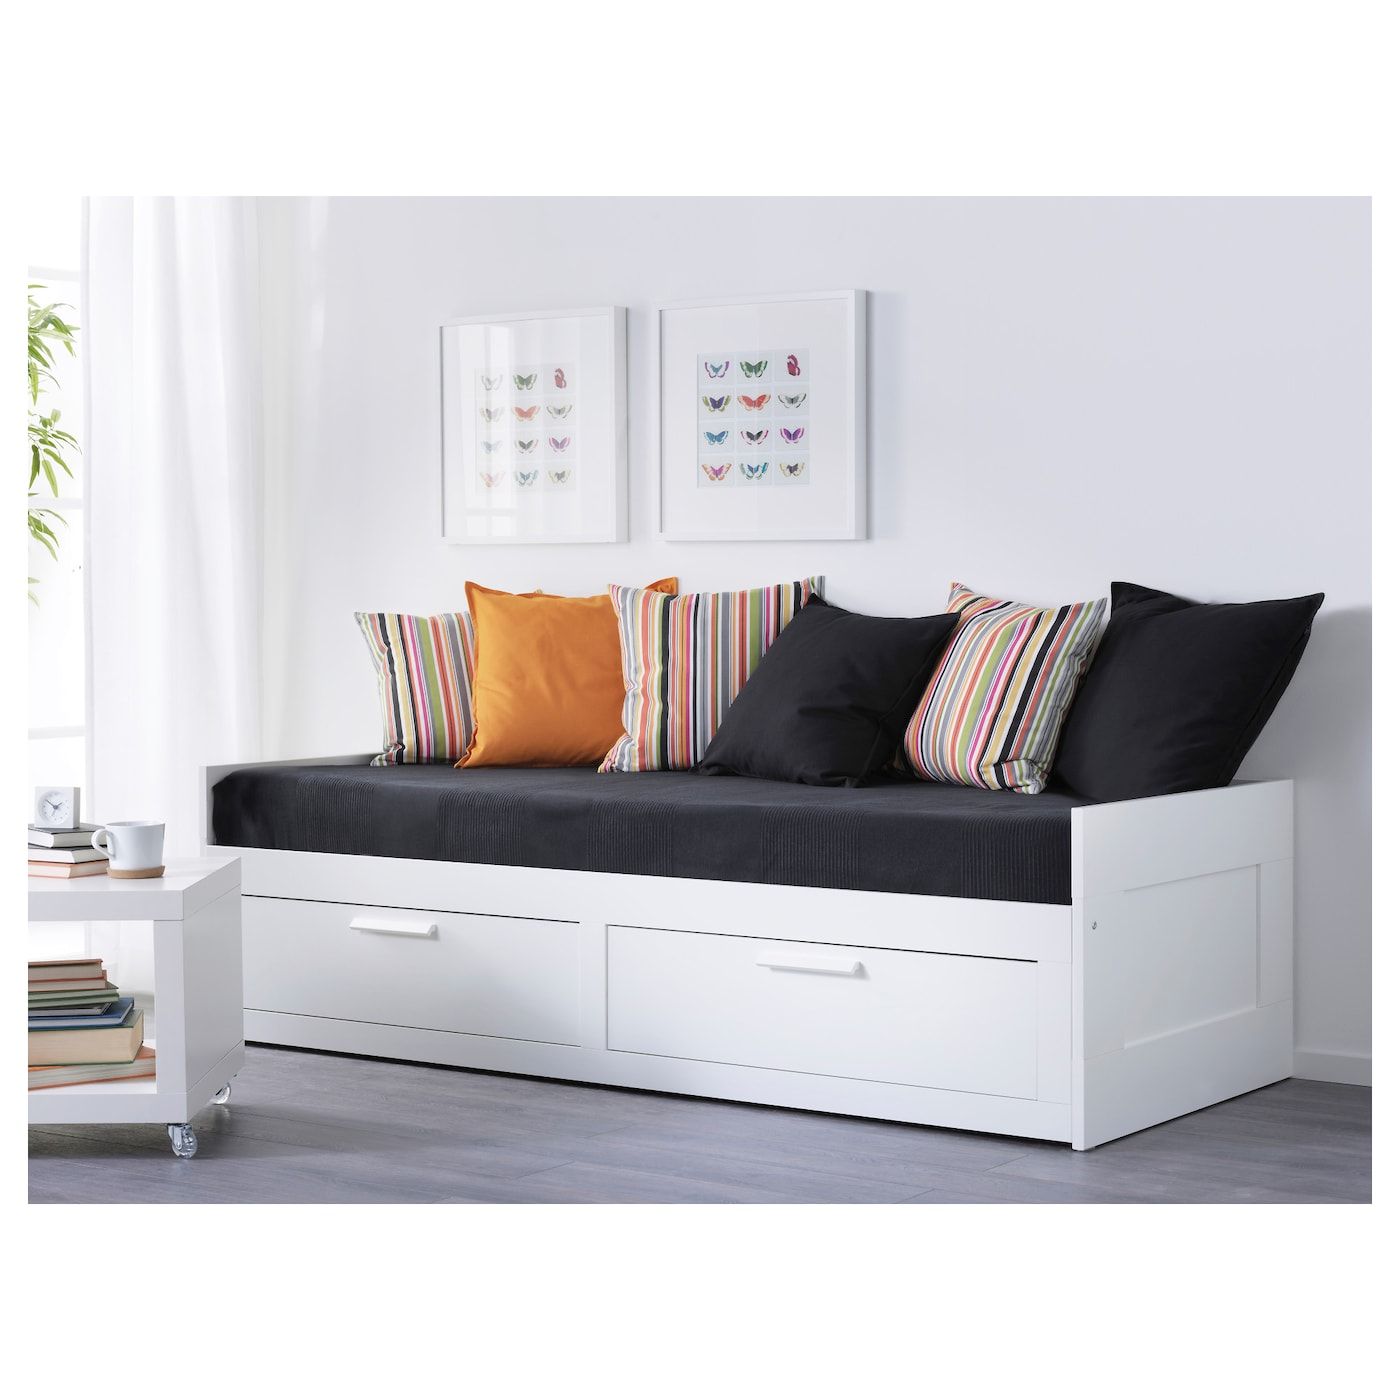 Brimnes Day Bed W 2 Drawers 2 Mattresses White Moshult Firm 80x200 Cm Ikea